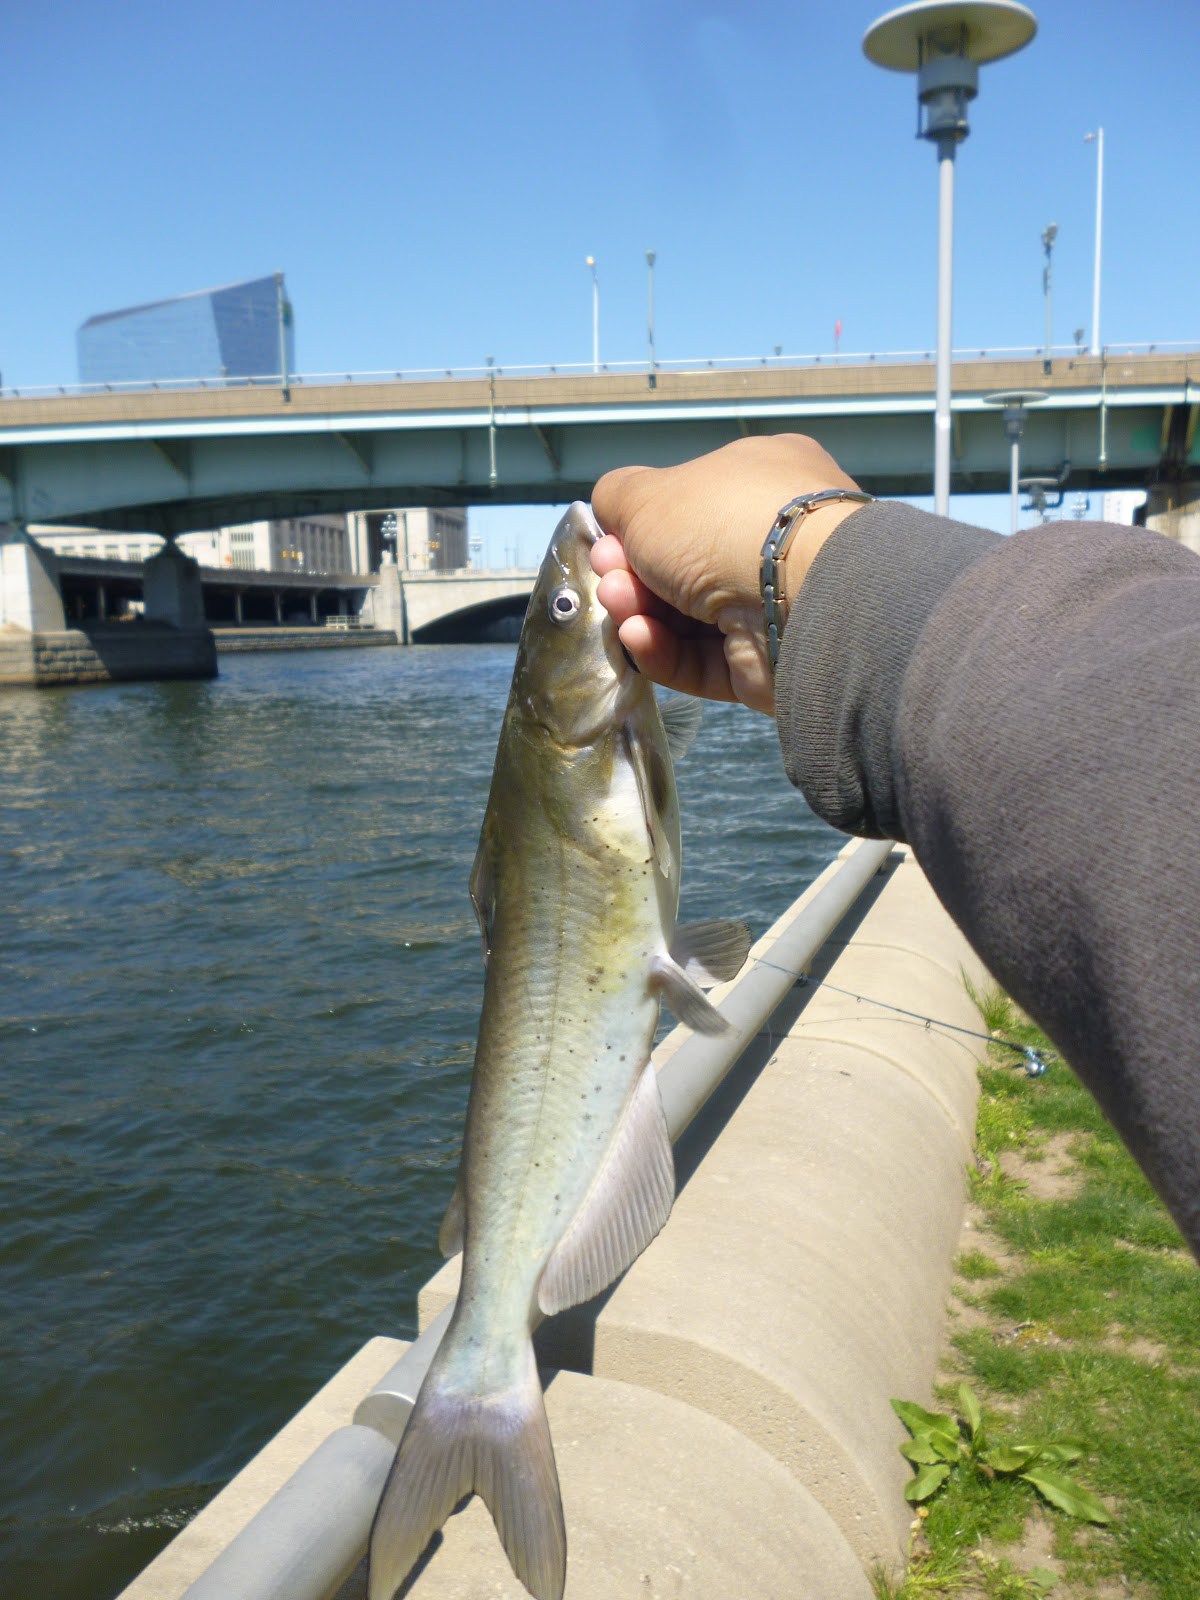 Extreme philly fishing the mighty schuylkill the best for Extreme philly fishing